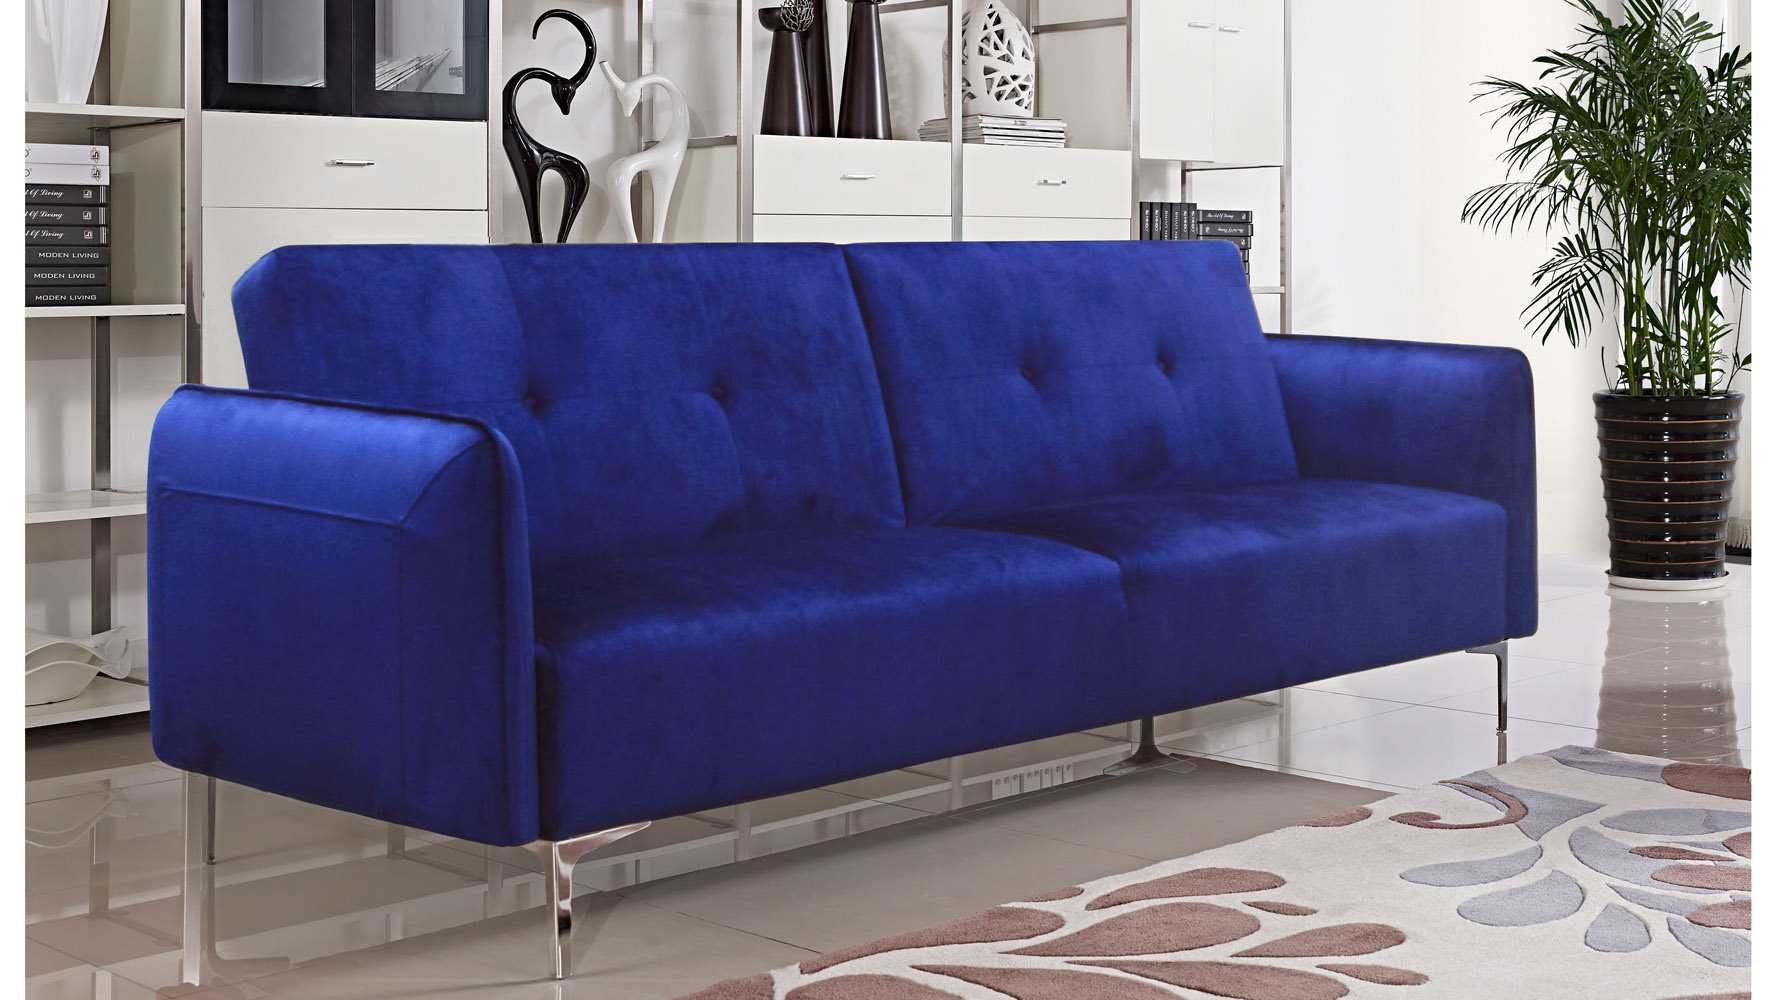 Arie Tufted Fabric Sofa Bed With Chrome Legs   Cobalt Blue | Zuri Furniture